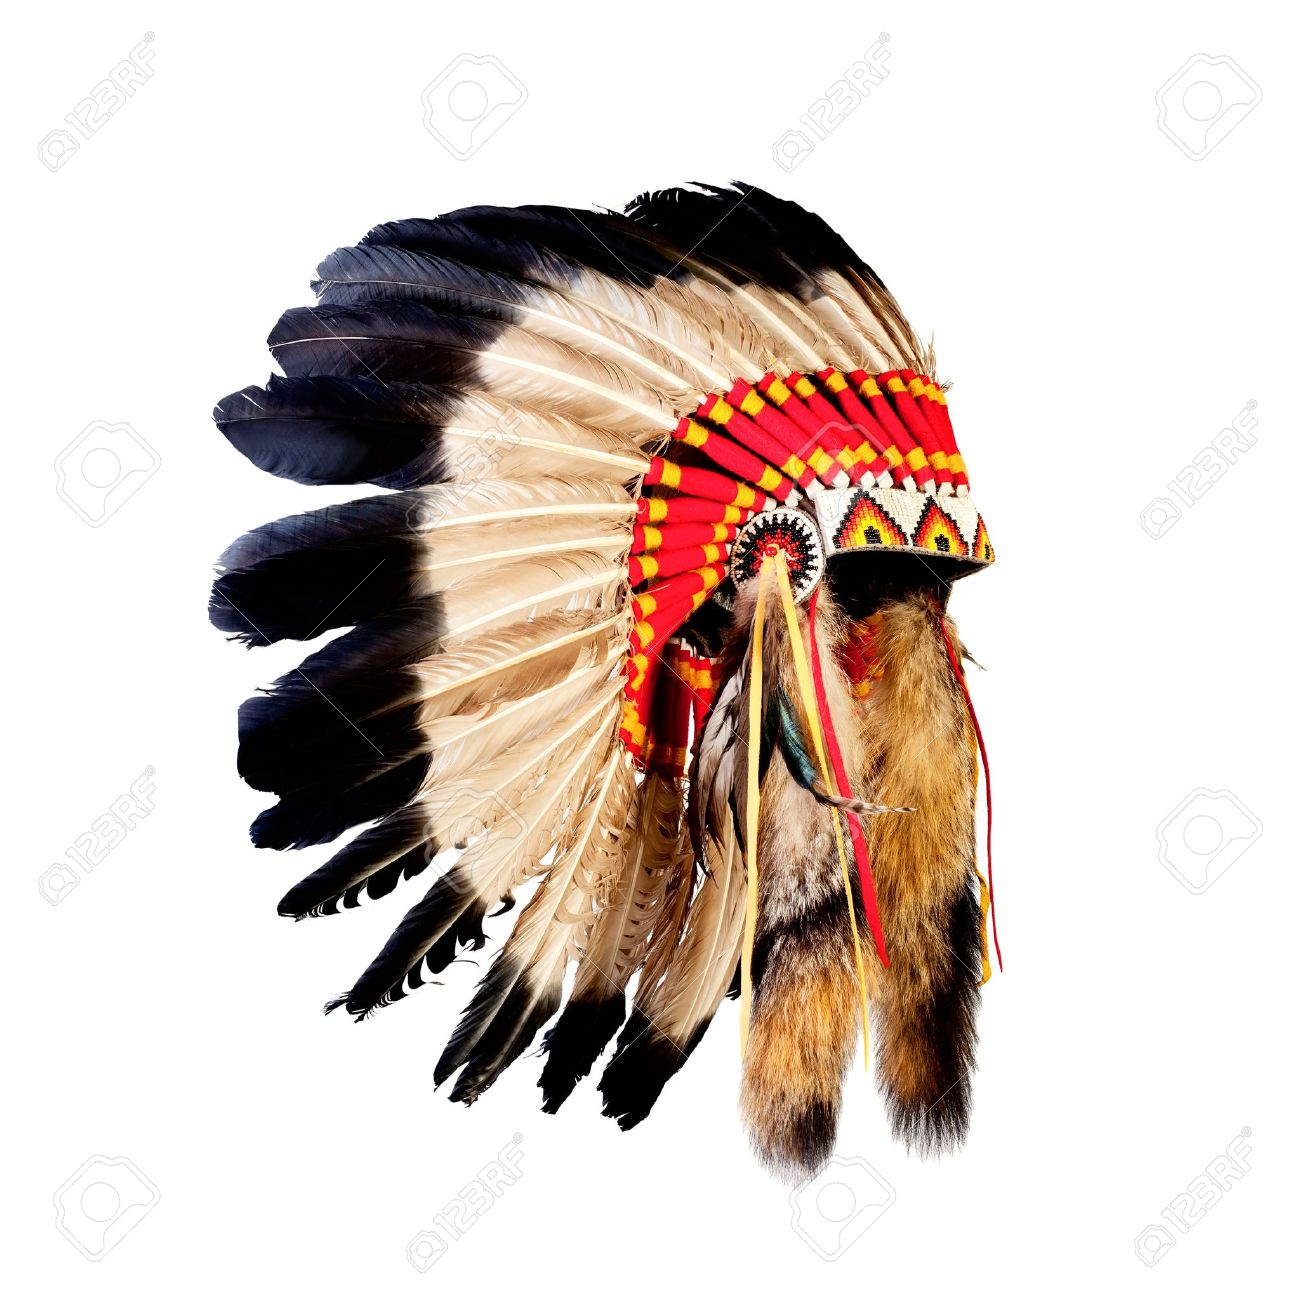 native american indian chief headdress (indian chief mascot, indian tribal headdress, indian headdress) - 19786449